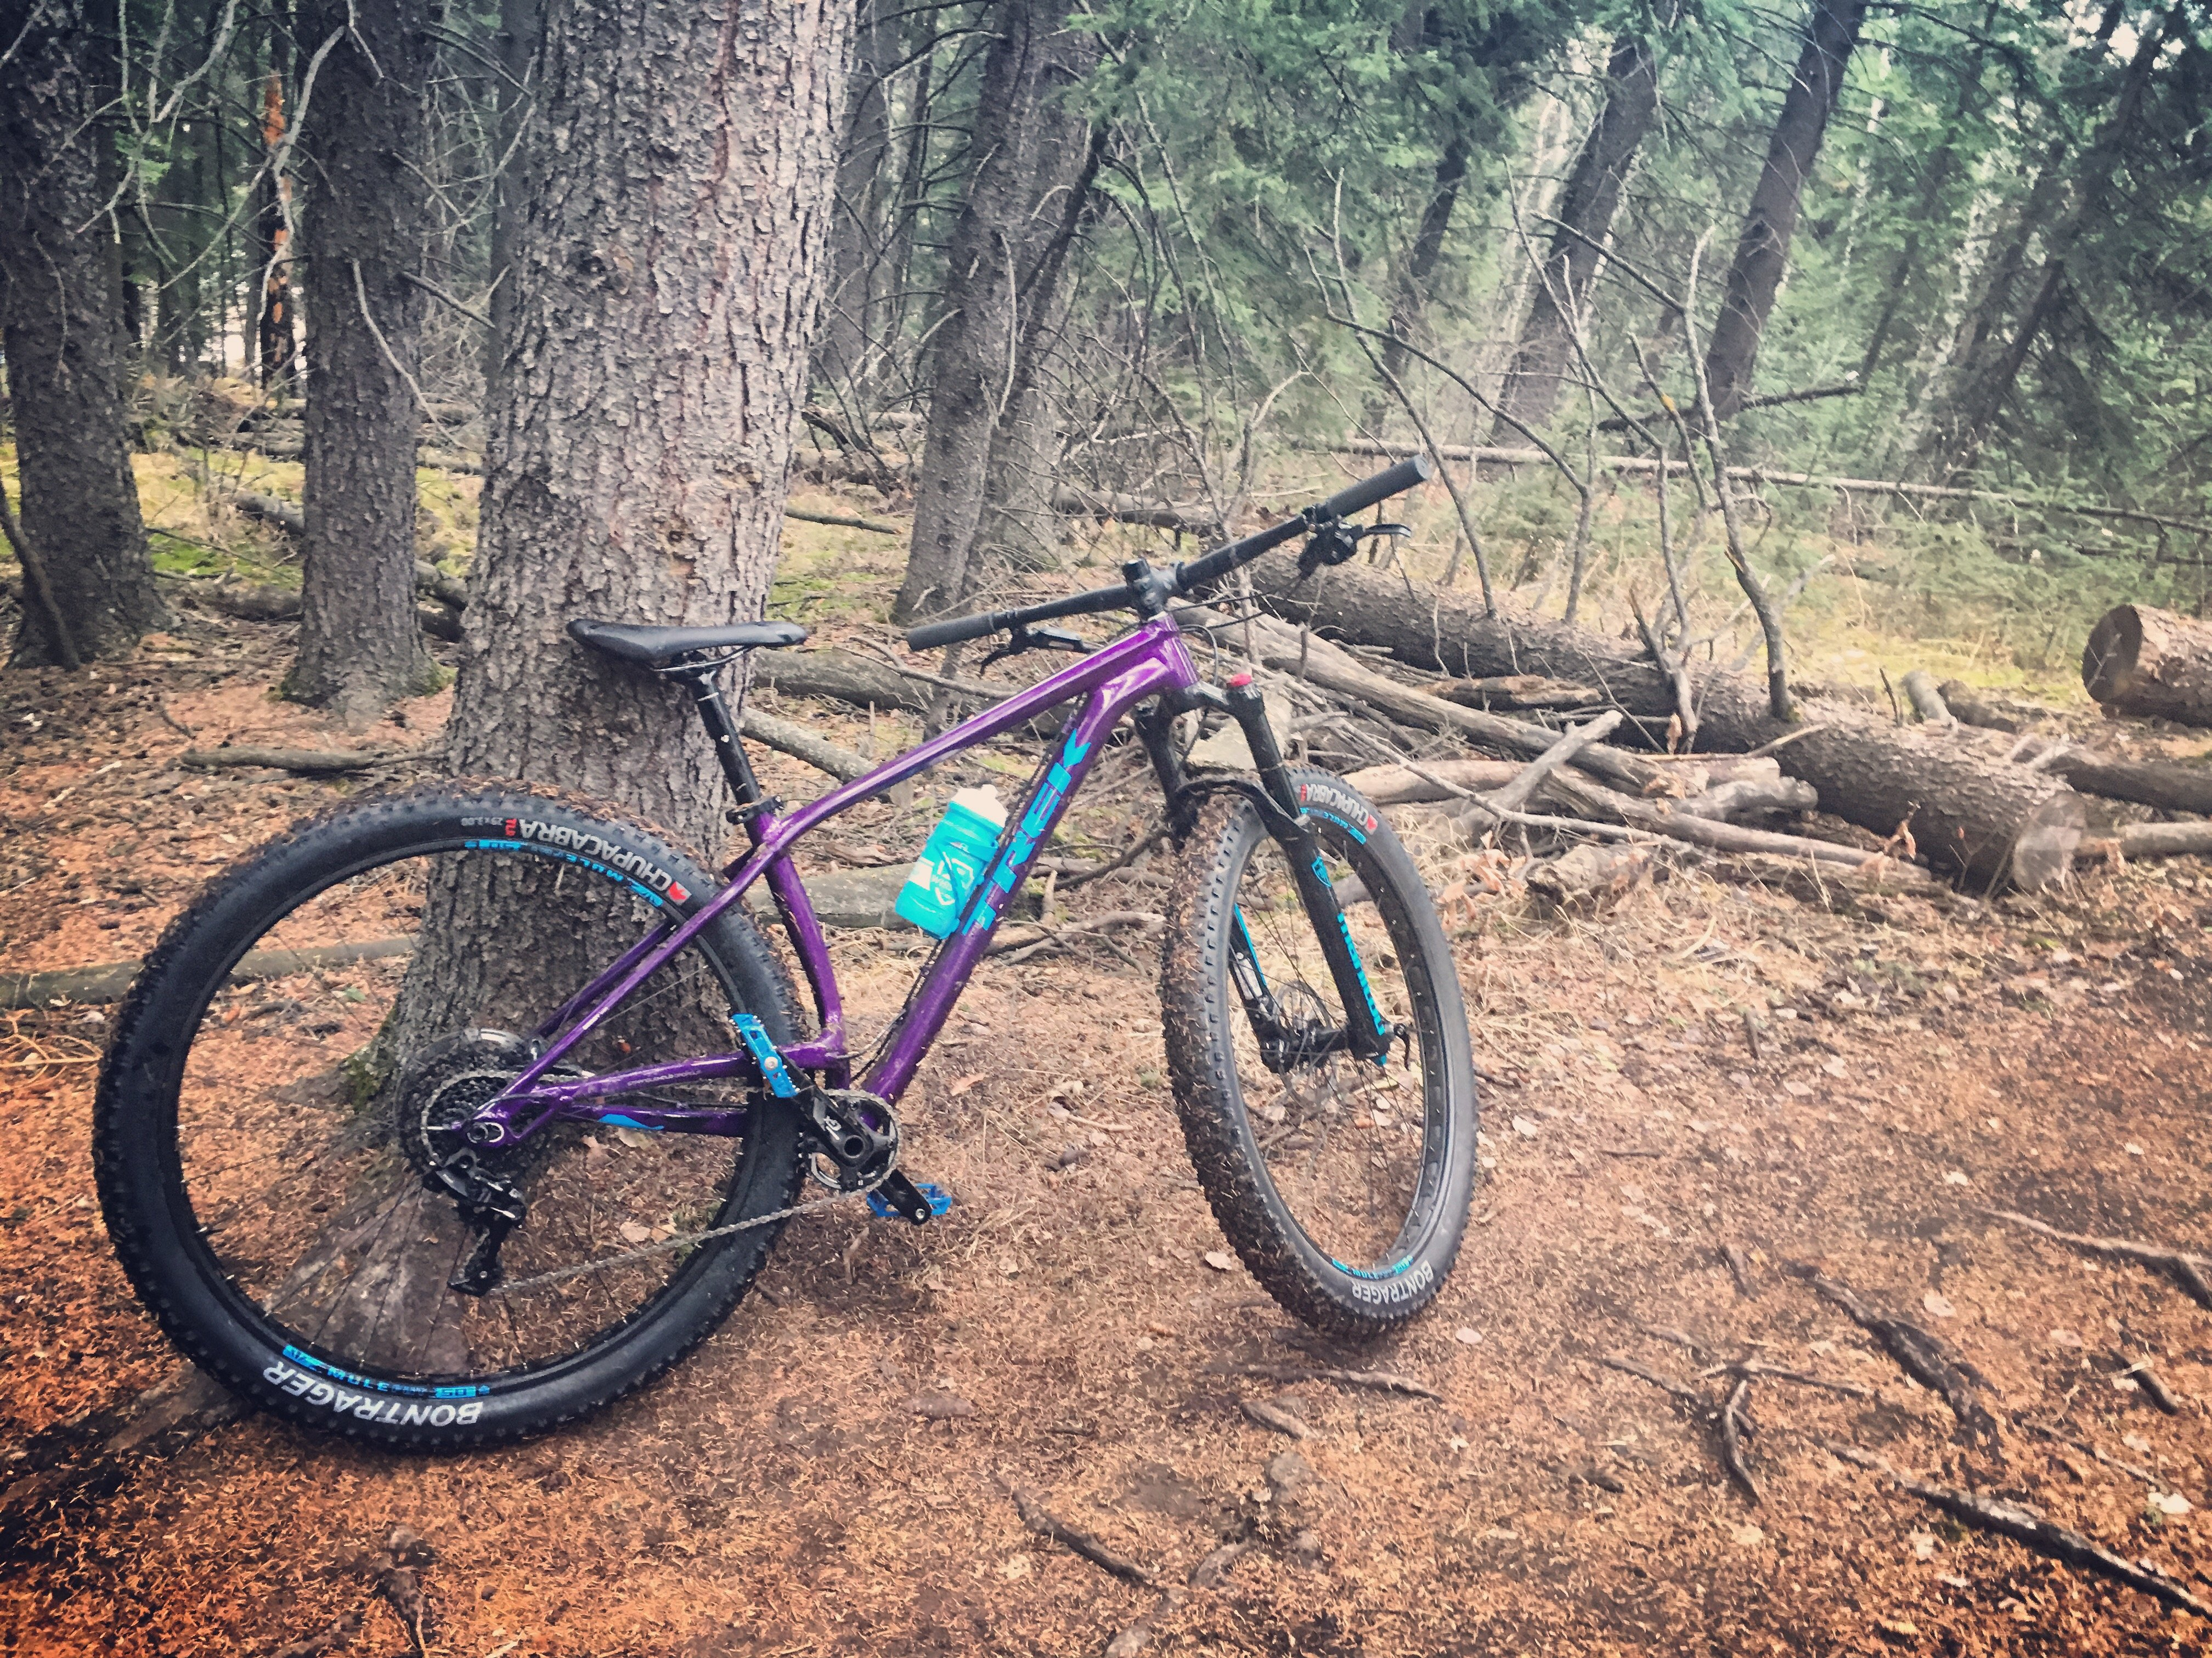 ef55d5548be If there's one thing that you'll find about the Stache, its that its a  wicked fun bike. Trek went out of their way to make sure that the new 2016  Stache ...